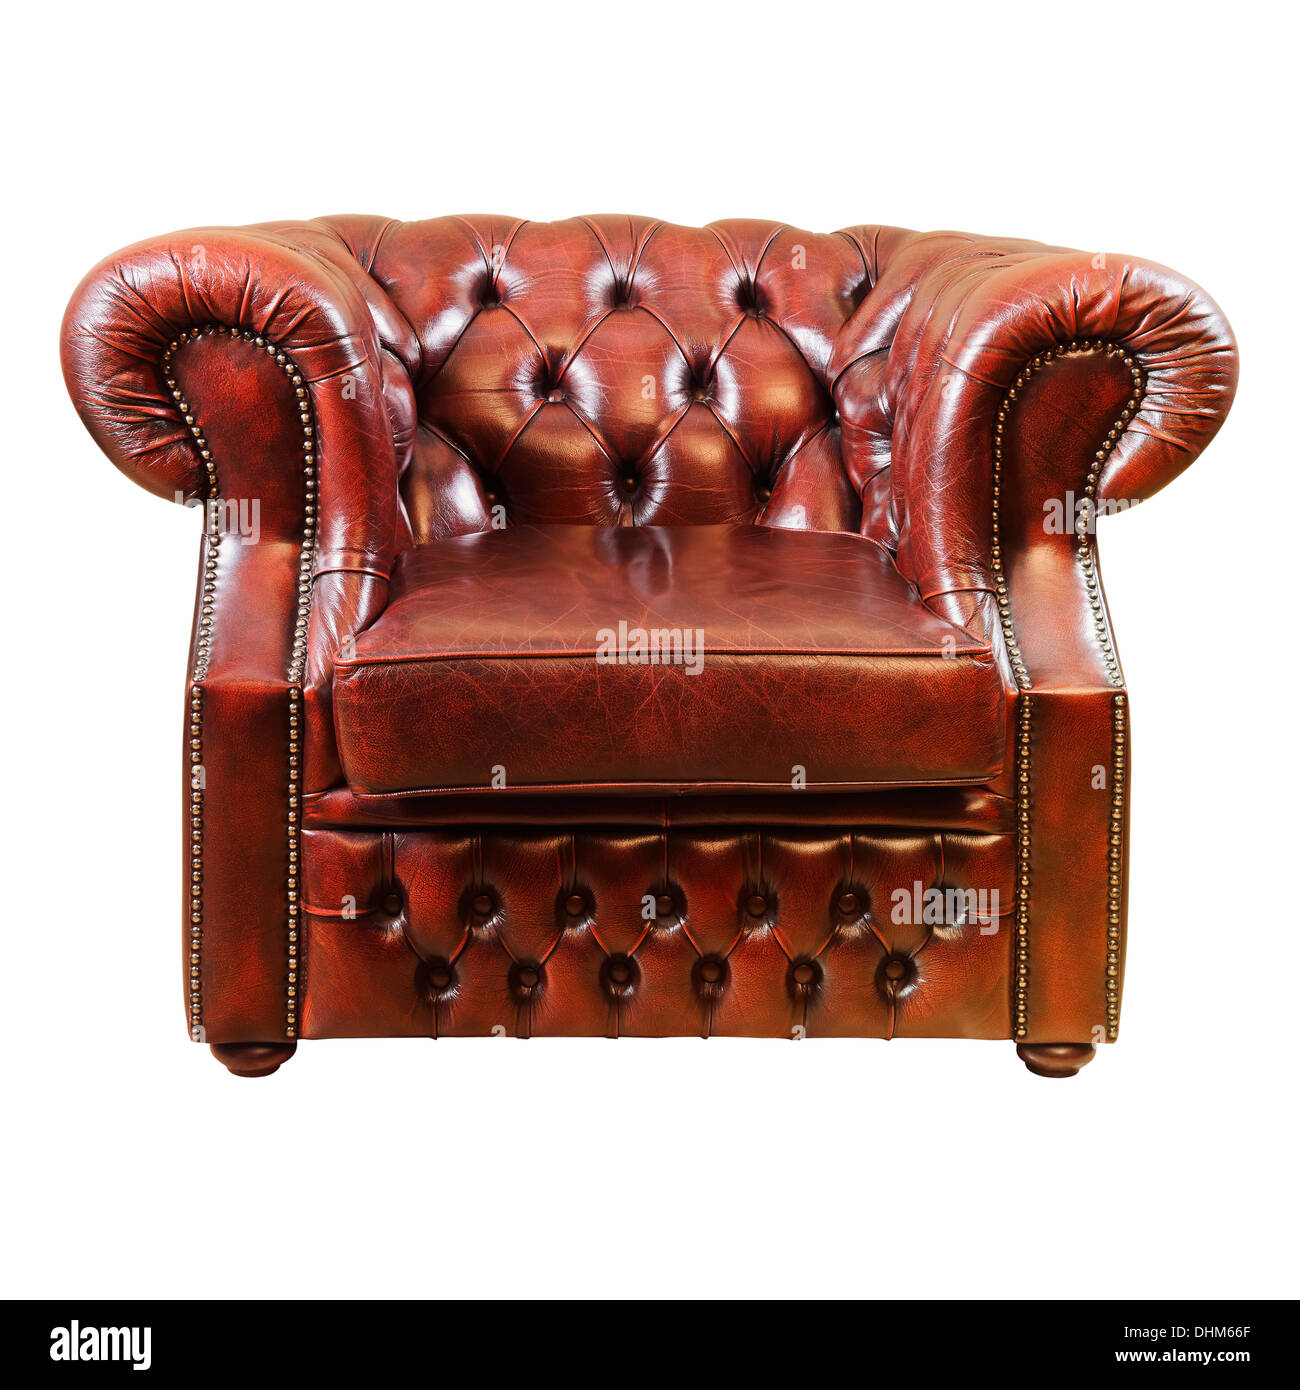 Old Antique Armchair - Stock Image